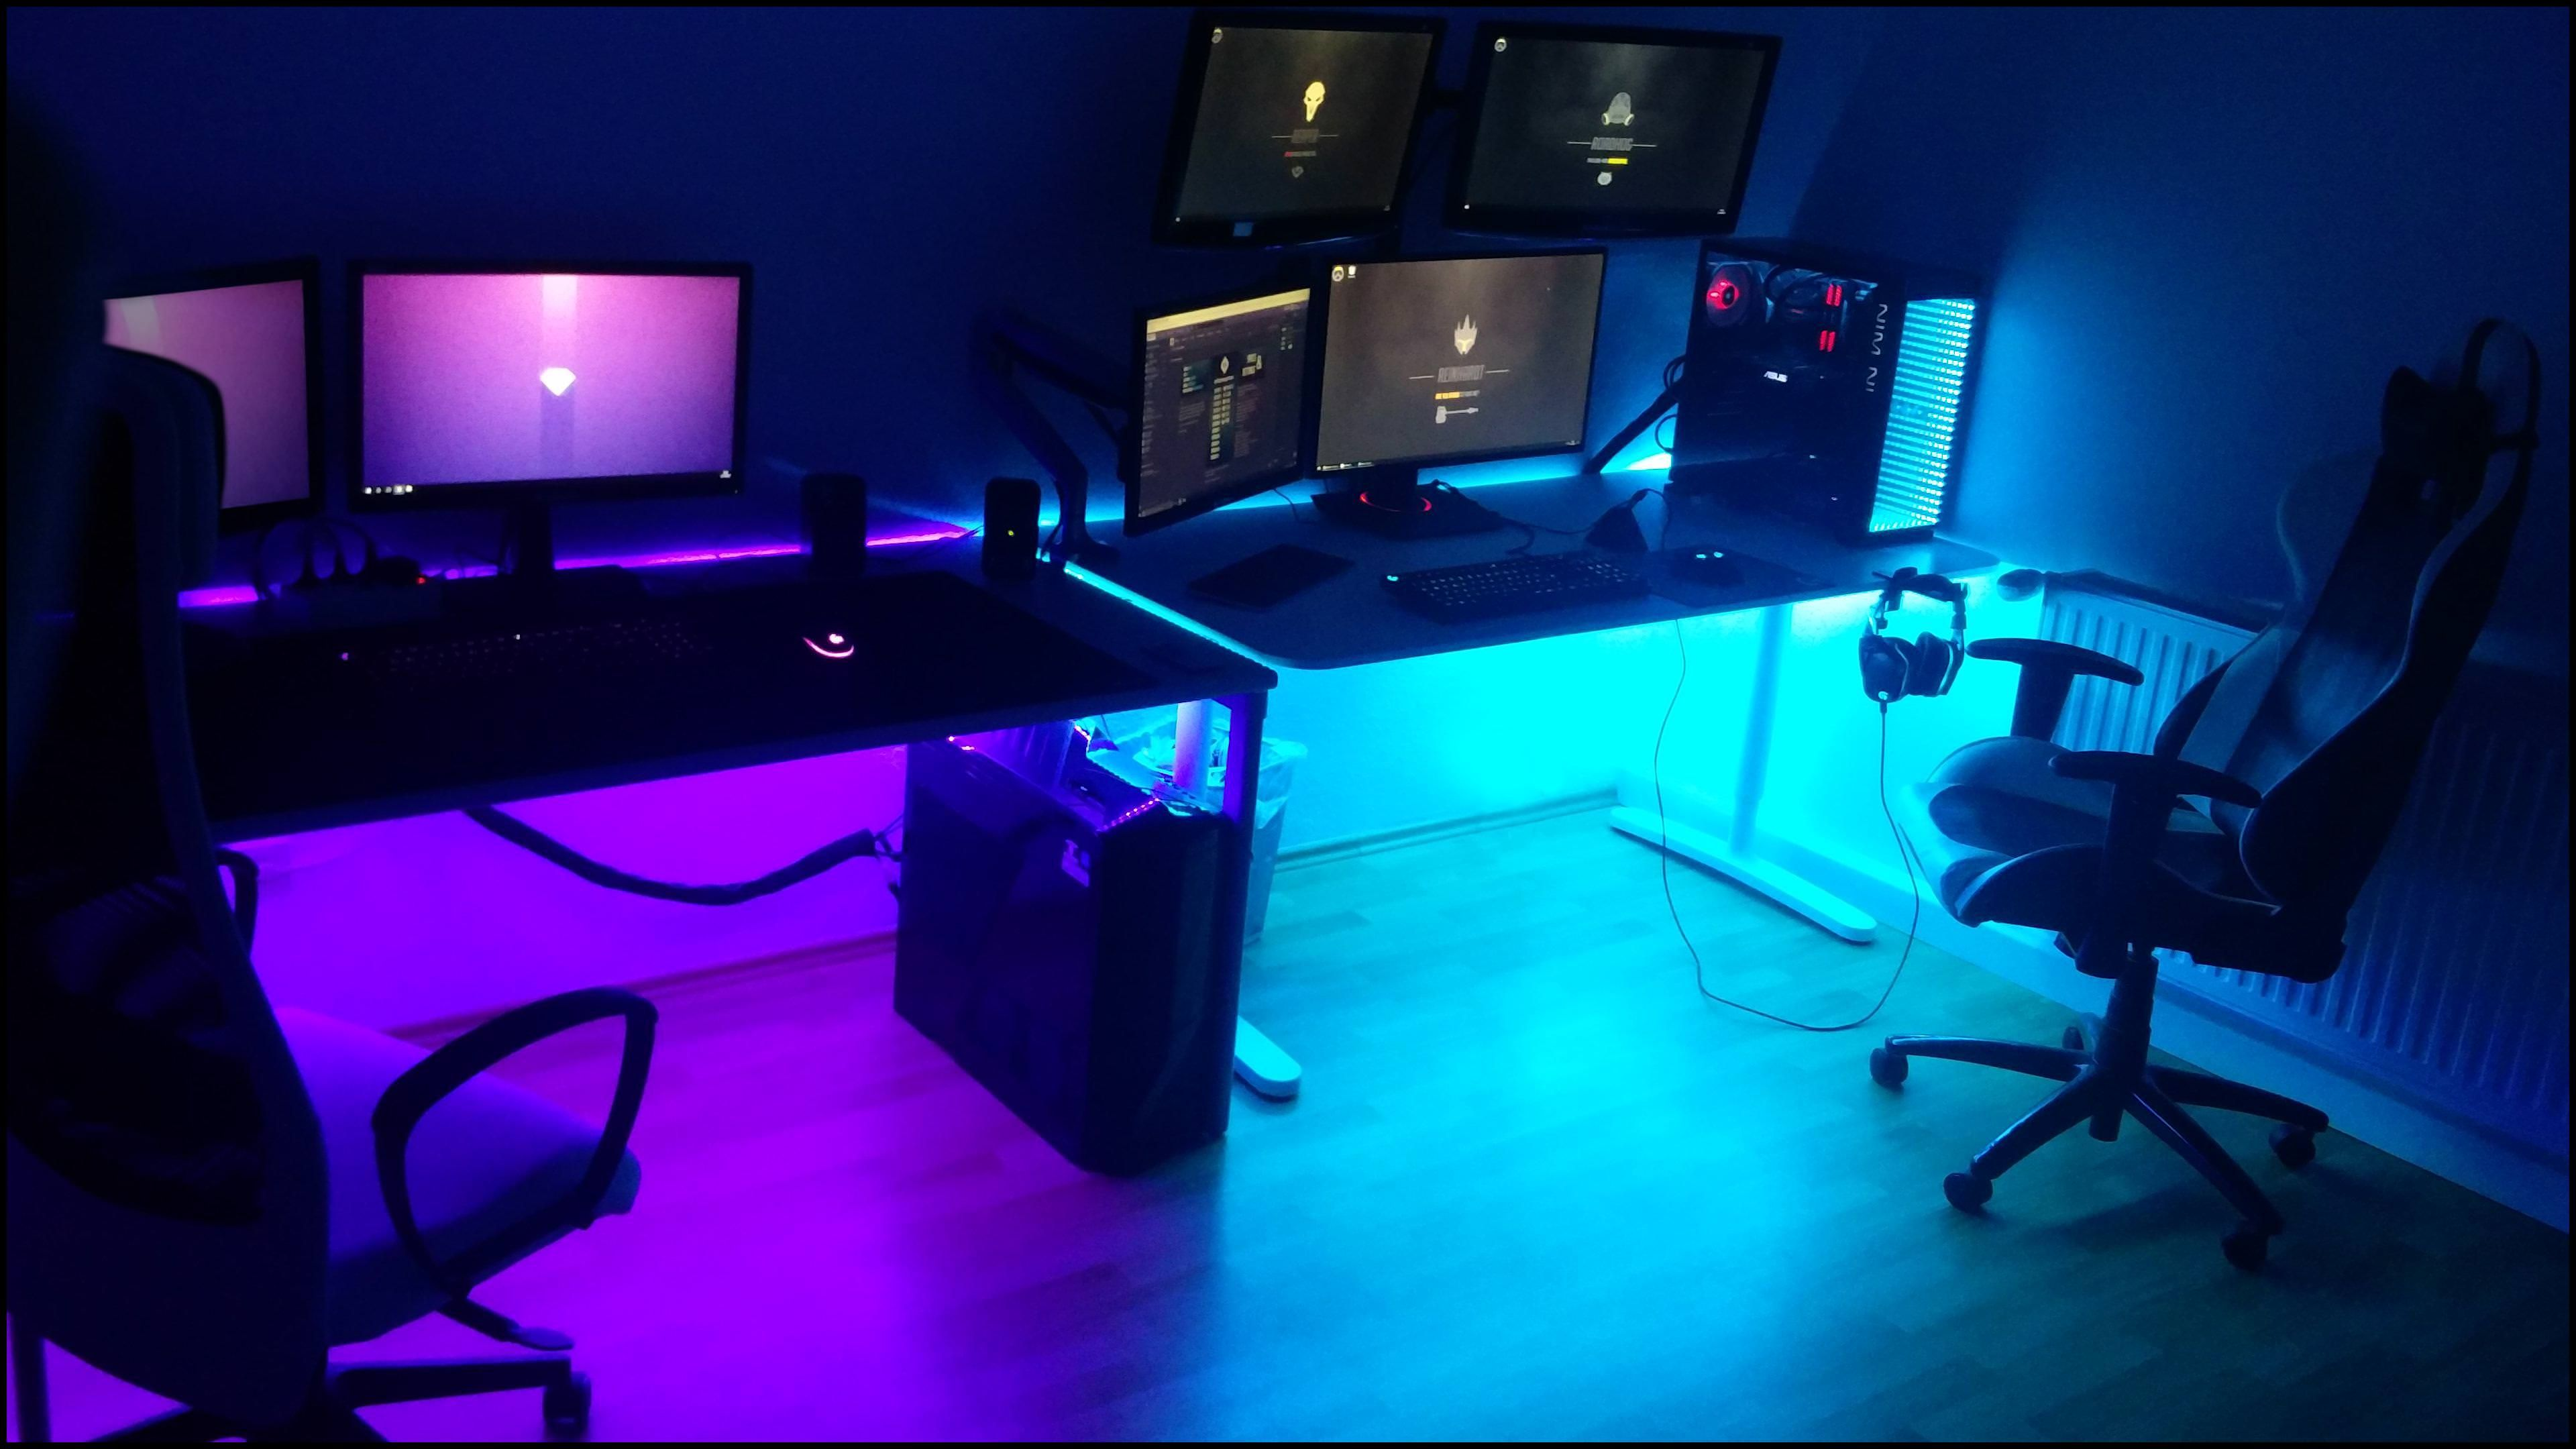 For Her Him Finally Moved Out And Dropped My Battlestation At My New Home Gaming Room Setup Interior Design Games Game Room Design